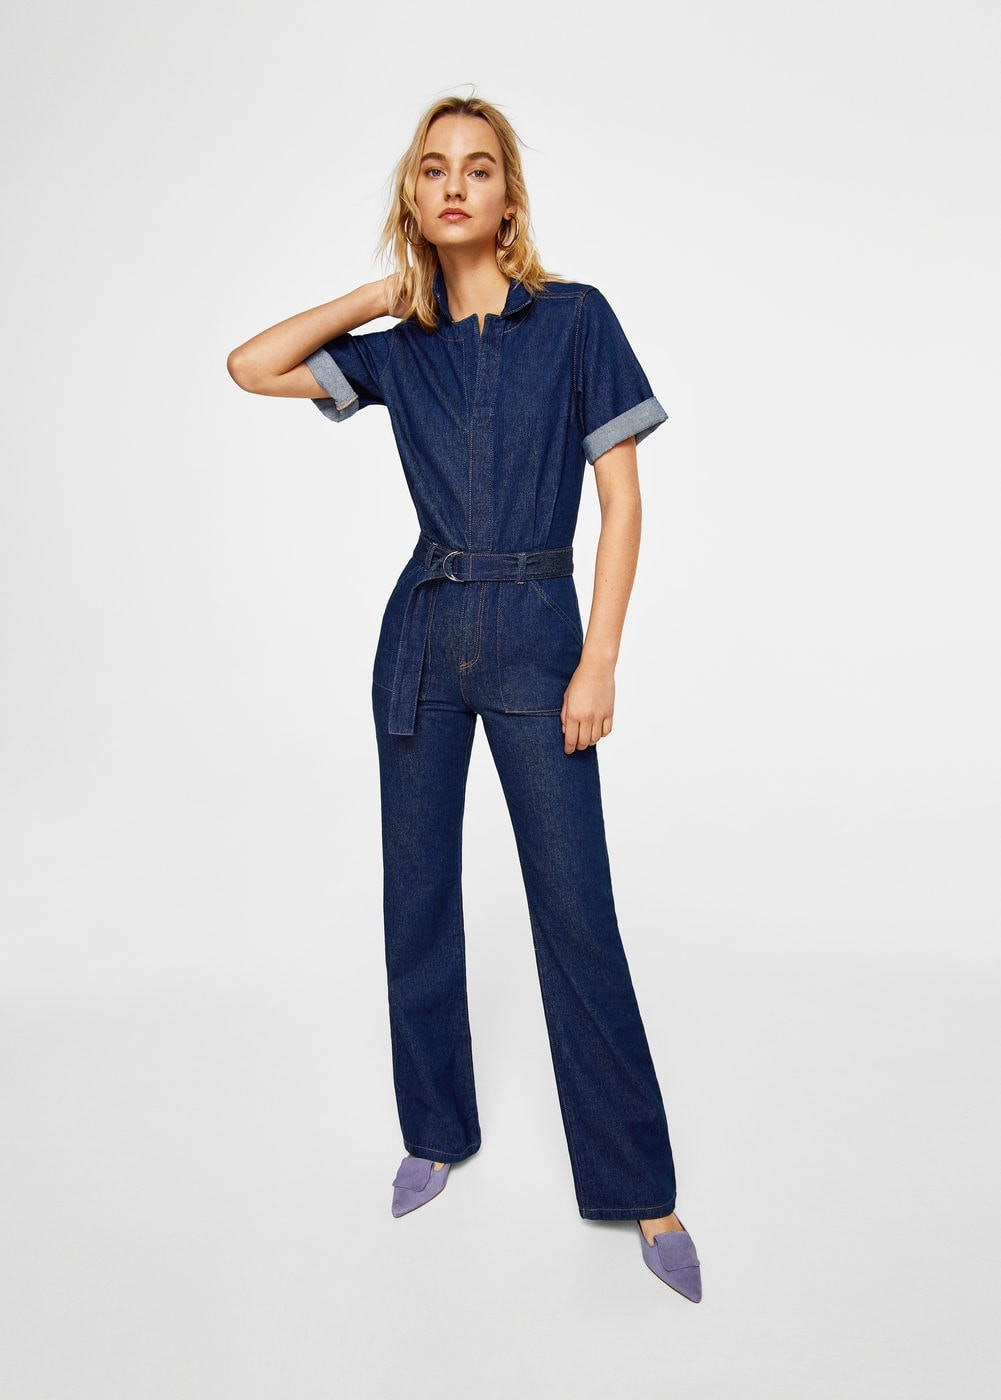 13 Jumpsuits To Be The Most Ideal In The Office Dress24h